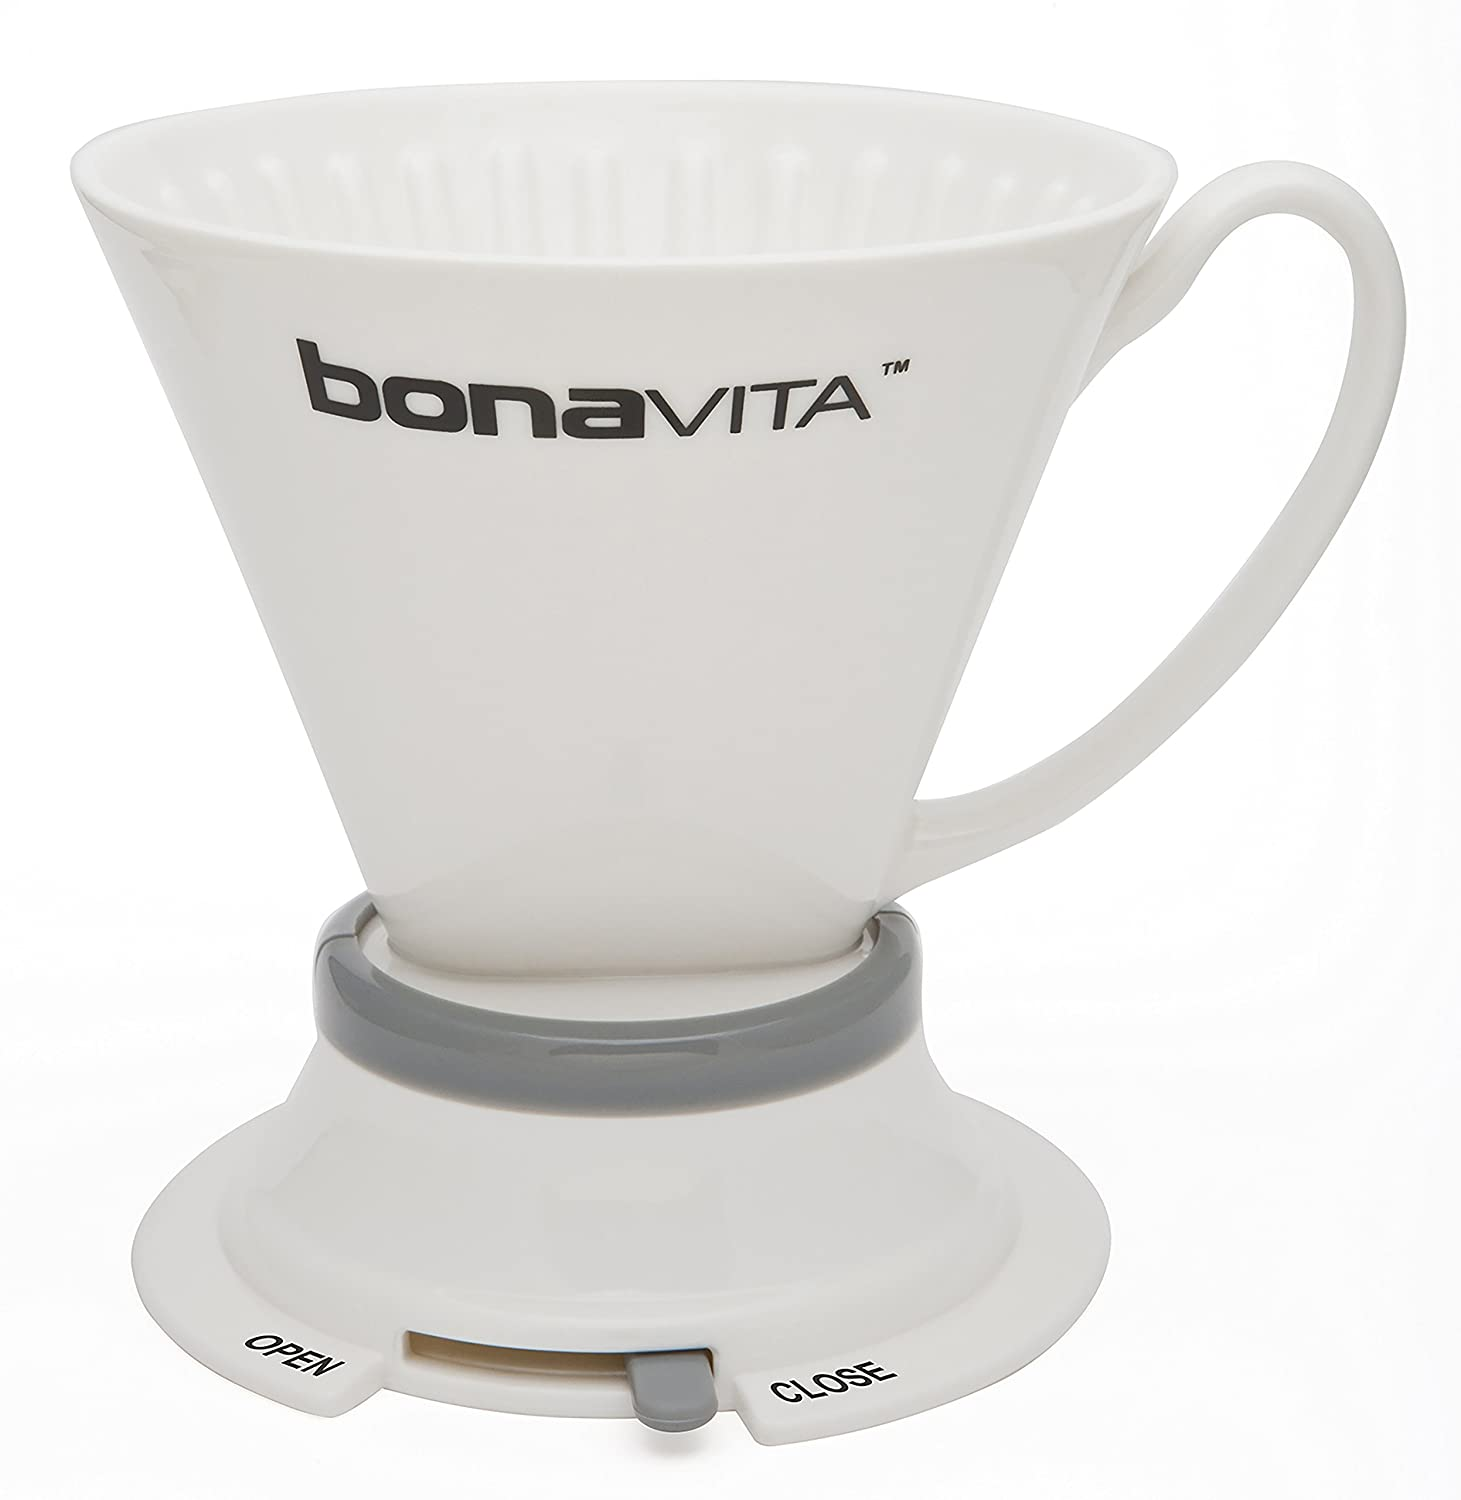 Bonavita Wide Base Porcelain Immersion Dripper Espresso Supply Inc BV4000IDV2